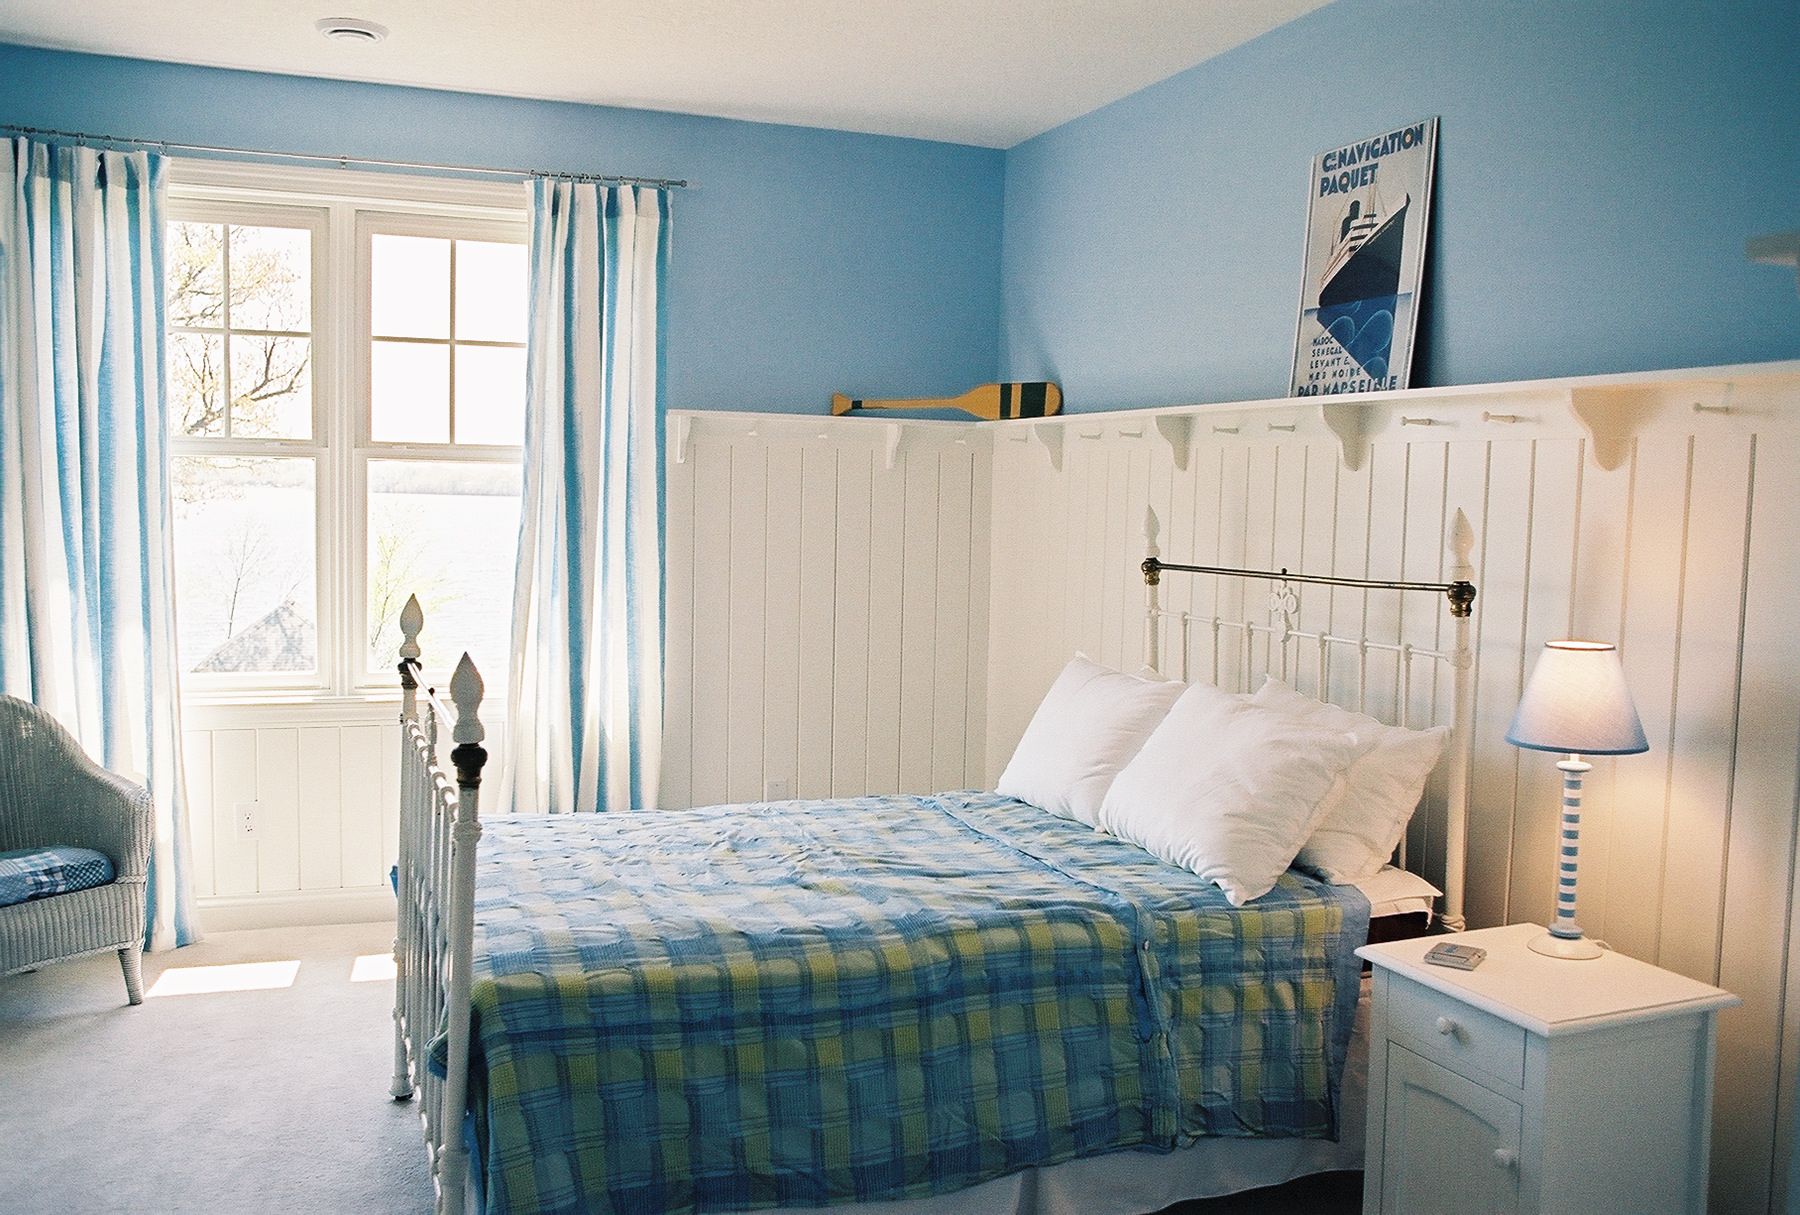 16 beautiful examples of light blue walls in a bedroom Blue bedroom